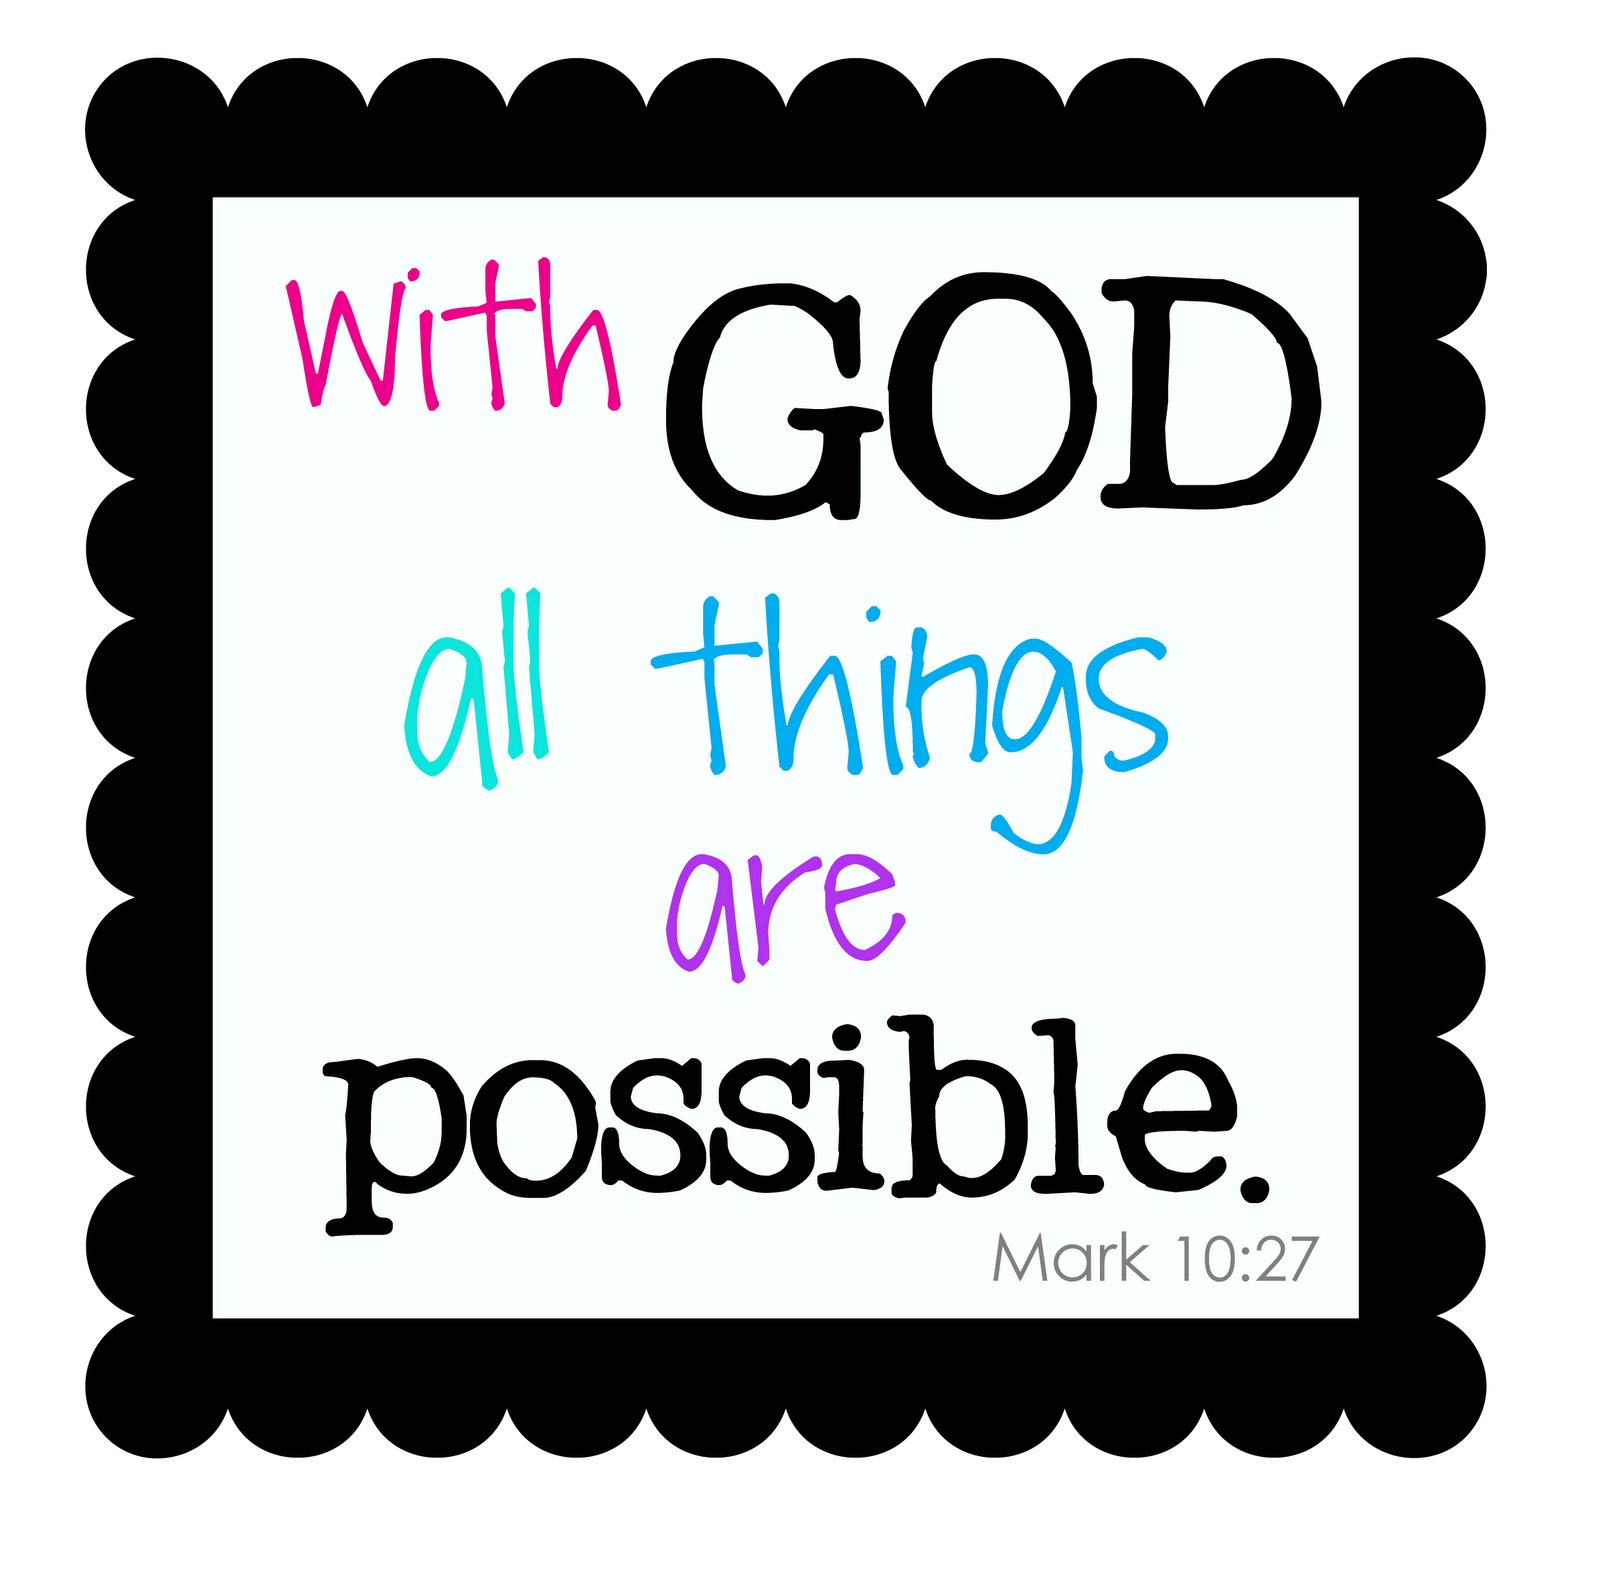 Motivation clipart educational quote. With god all things